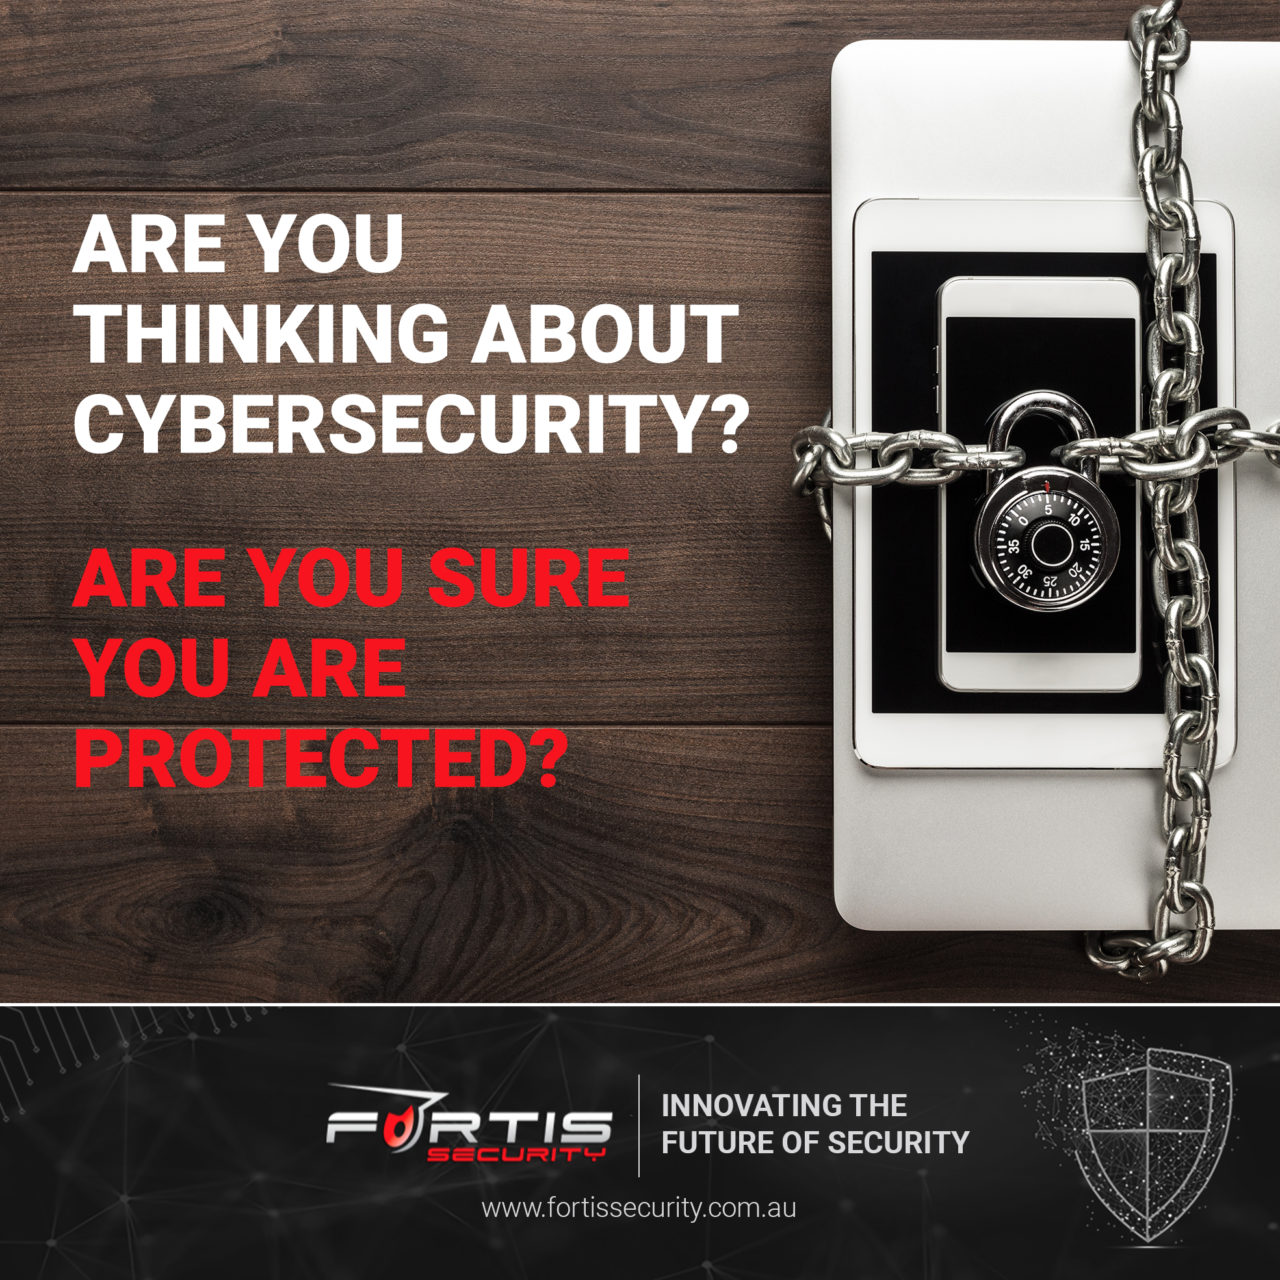 https://www.fortissecurity.com.au/wp-content/uploads/2021/04/Article-1-1280x1280.jpg